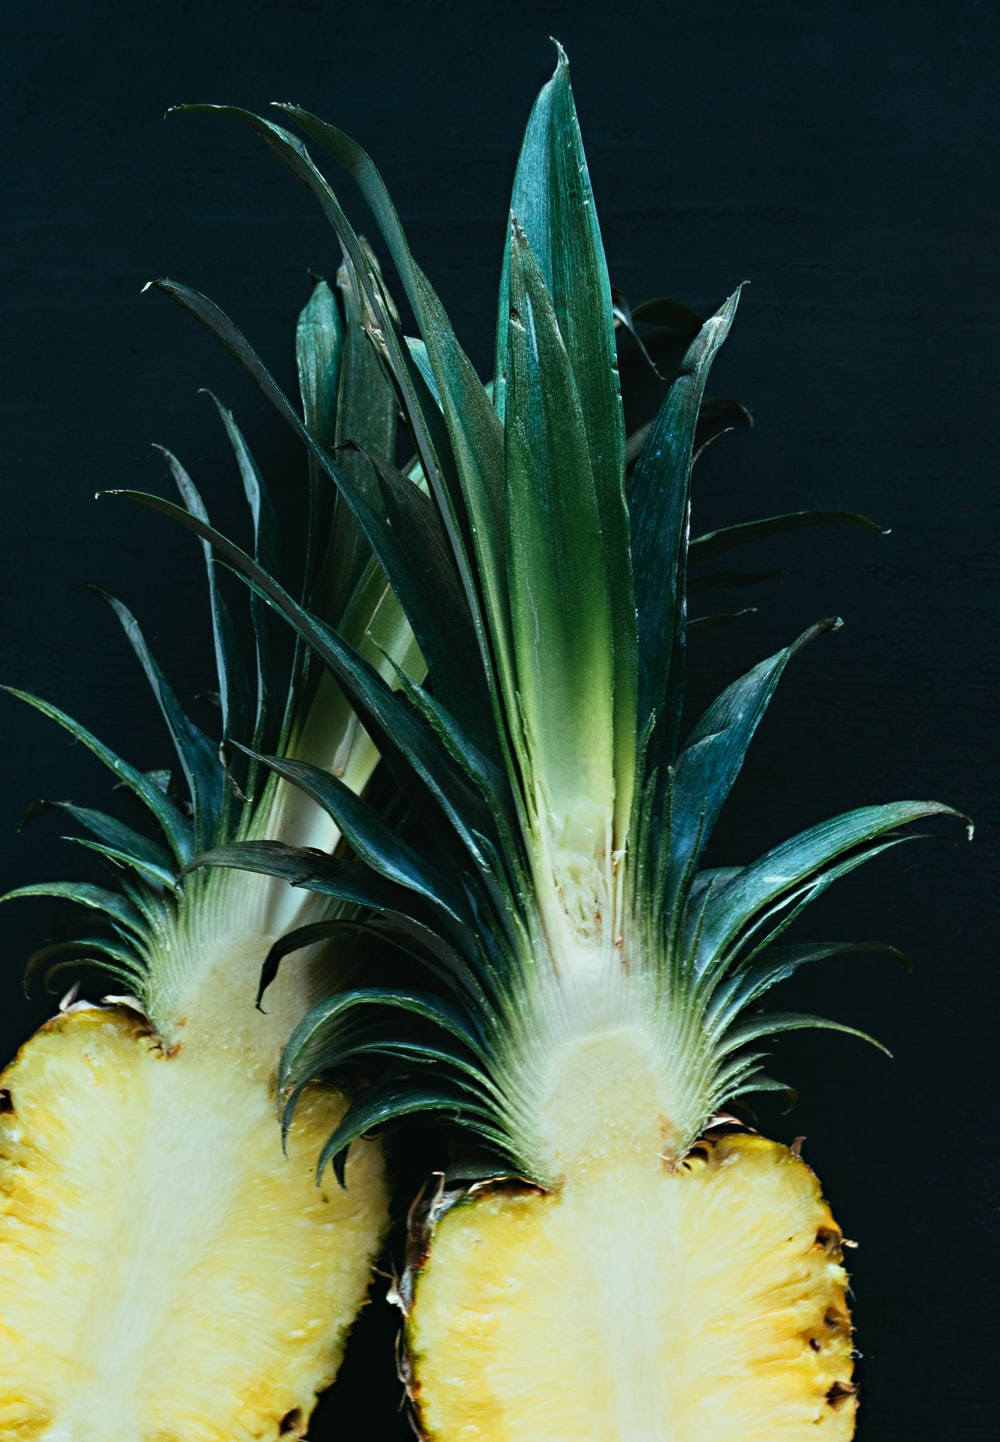 pineapple slices with crown